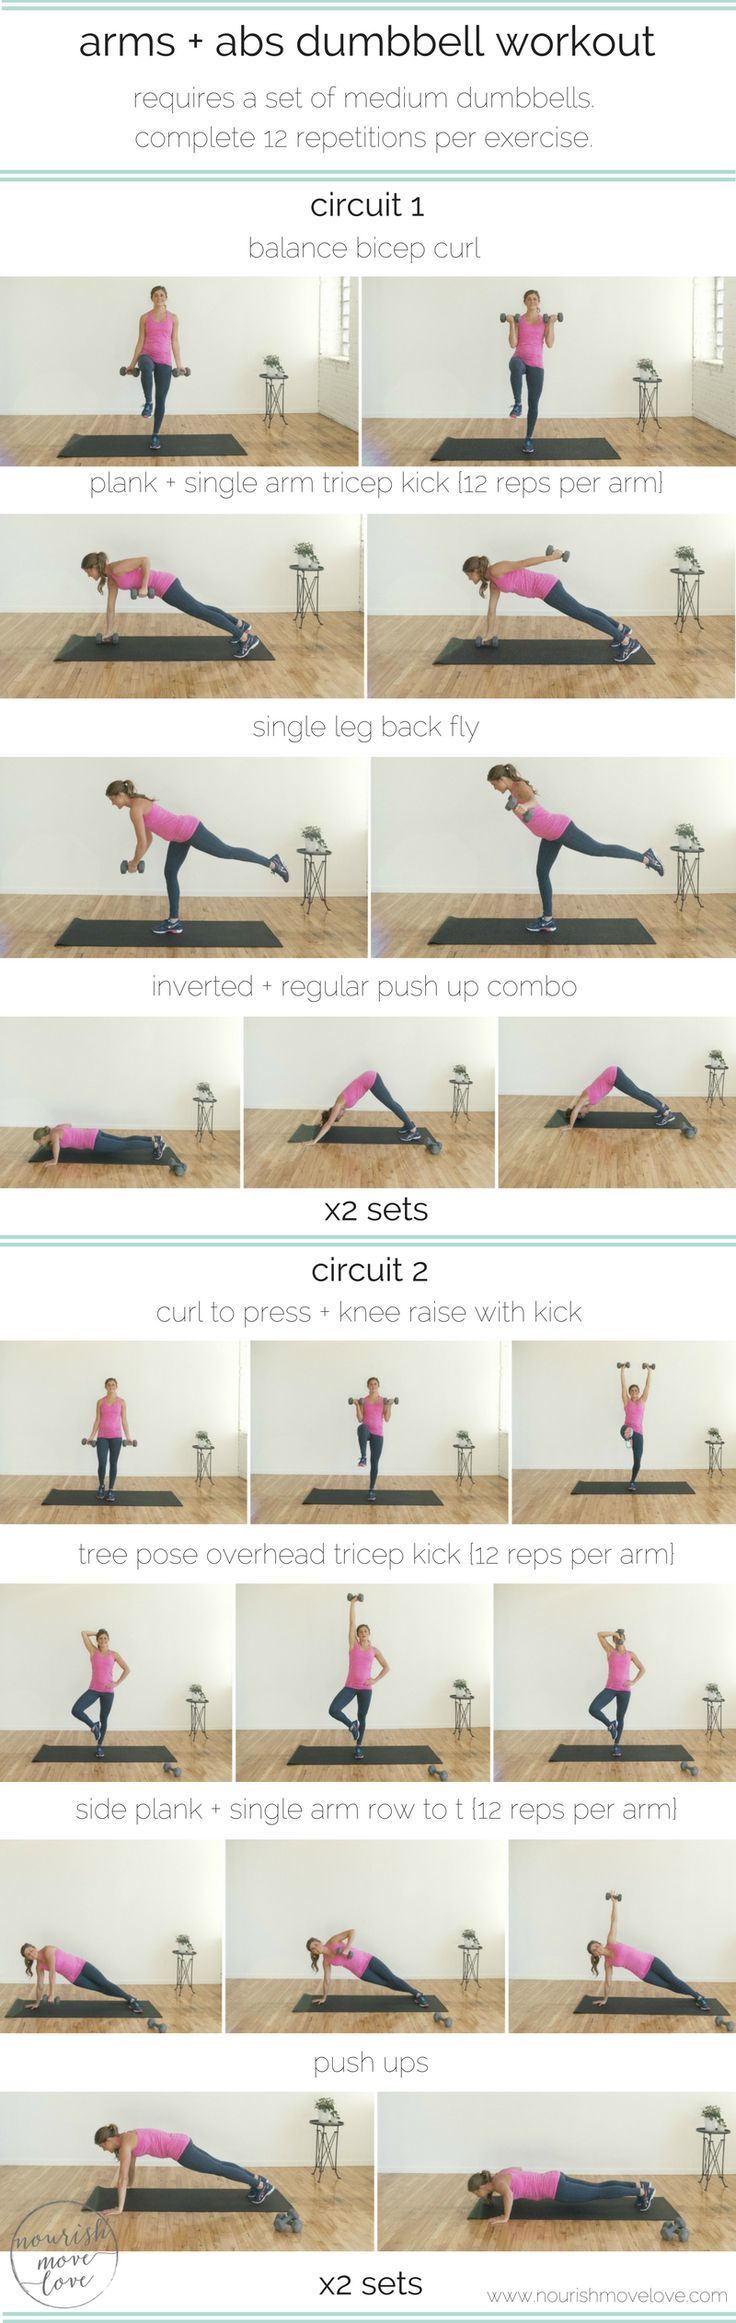 arms + abs dumbbell workout. Compound upper body + core exercises. Balance-based exercises using medium weight dumbbells. Circuit workout for home or gym. 30 minutes or less for a full body workout. Upper body, lower body exercises. Bicep, tricep, shoulders, back, core. | www.nourishmovelove.com